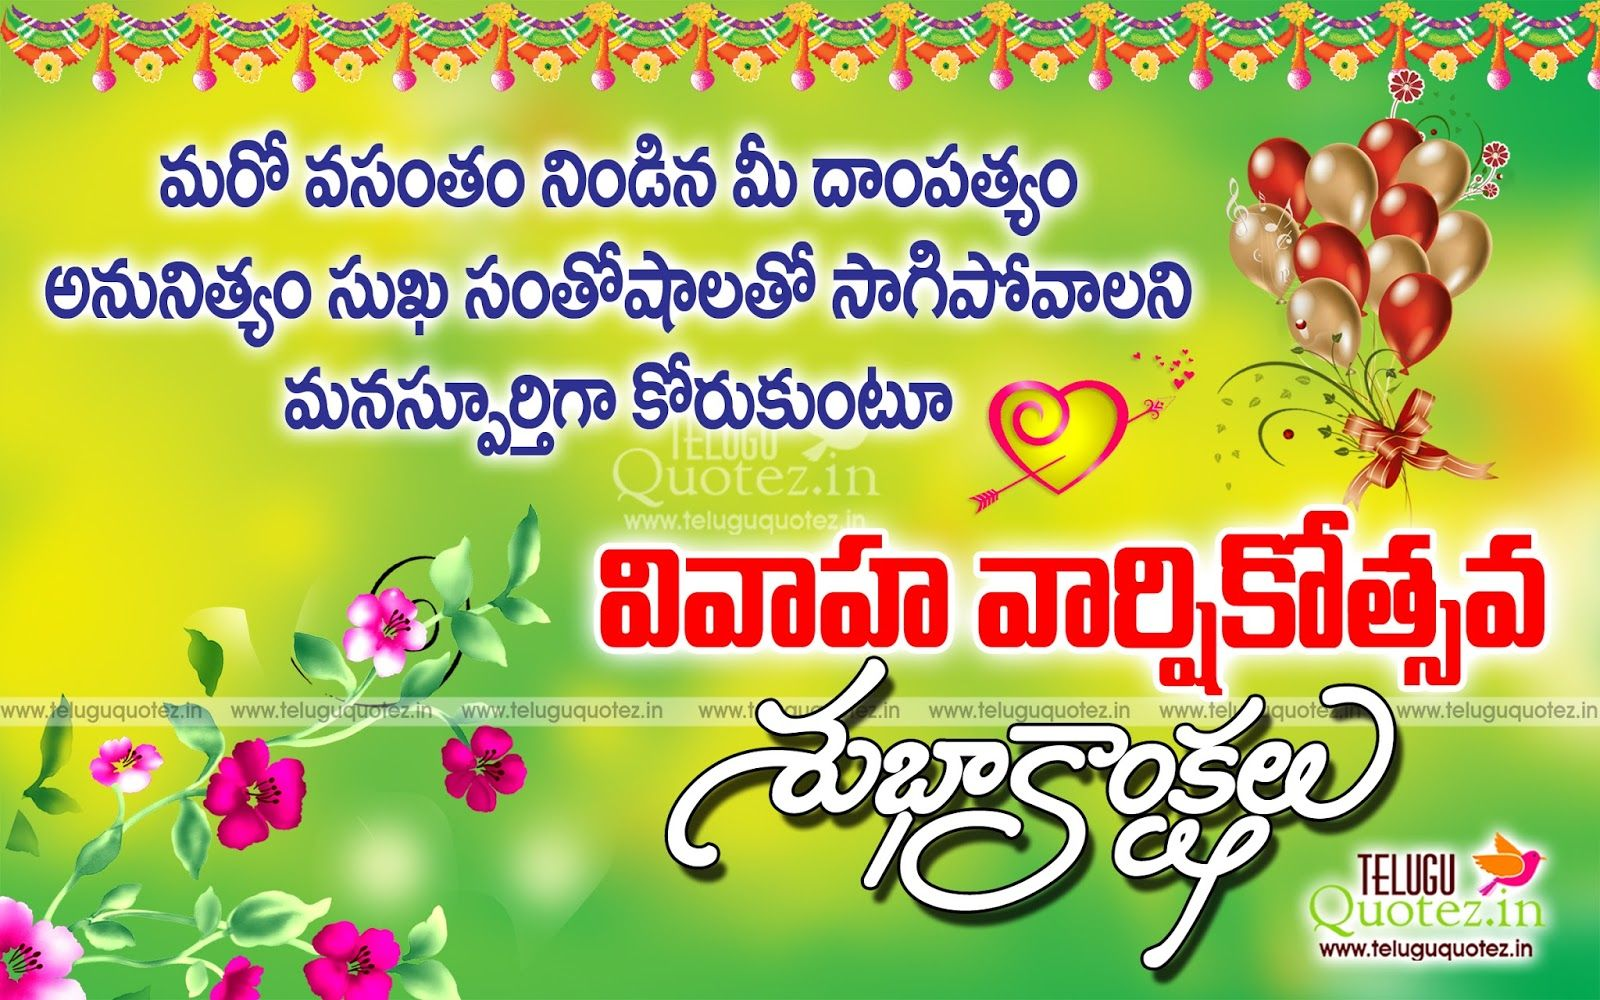 Best Telugu Marriage Anniversary Greetings Wedding Wishes Sms